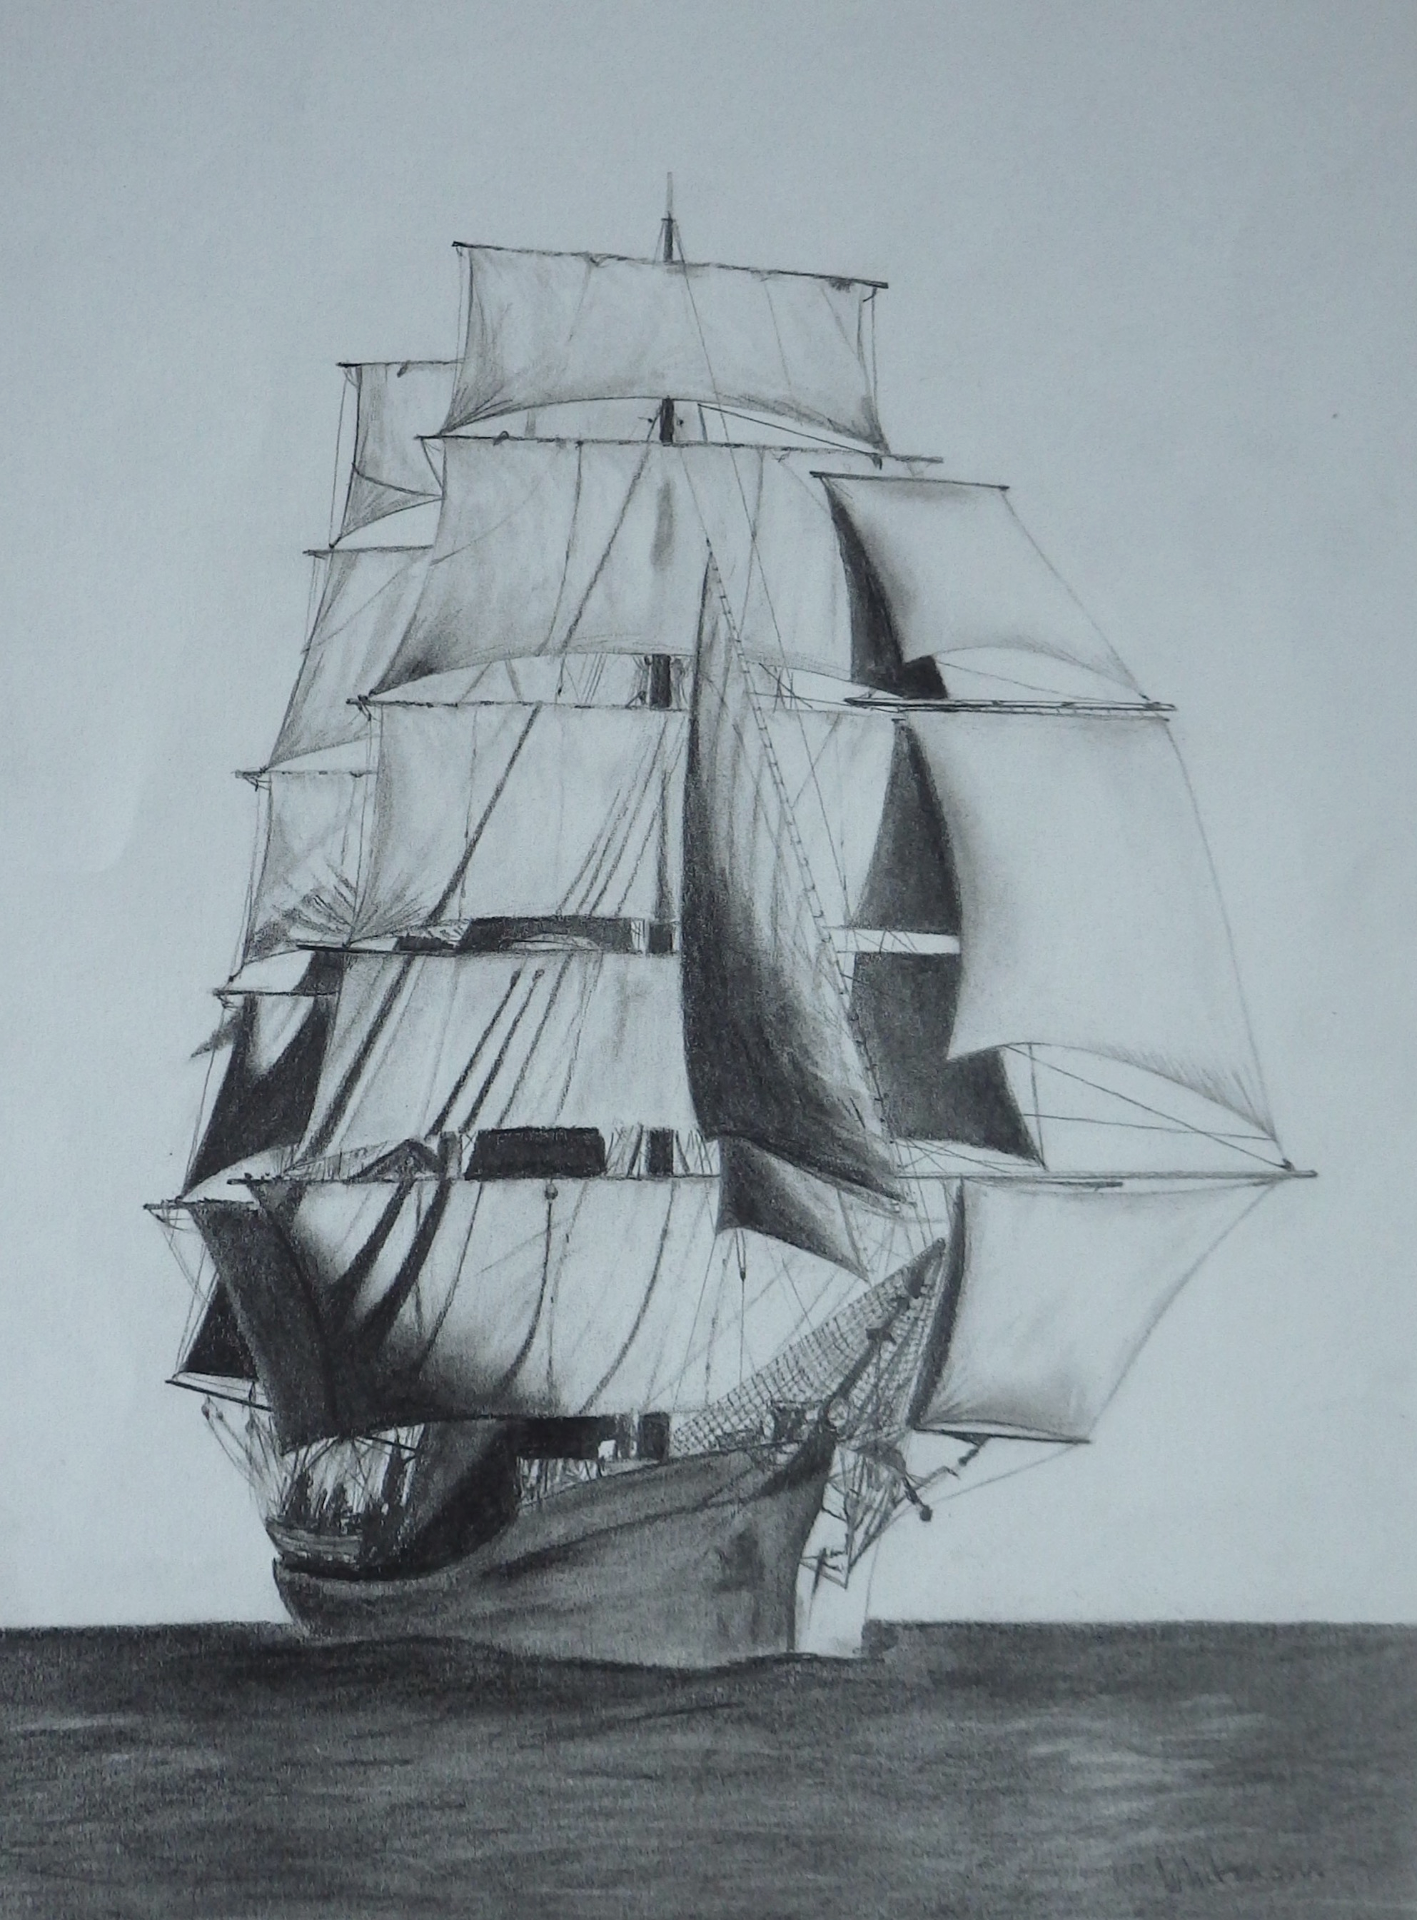 Ship Barque Bolton Diagrams Not Lossing Wiring Diagram Terms Sail Rigging Tall Ships Pinterest 150 Picton Castle Pencil Drawing By Elena Whitman Was Rh Com